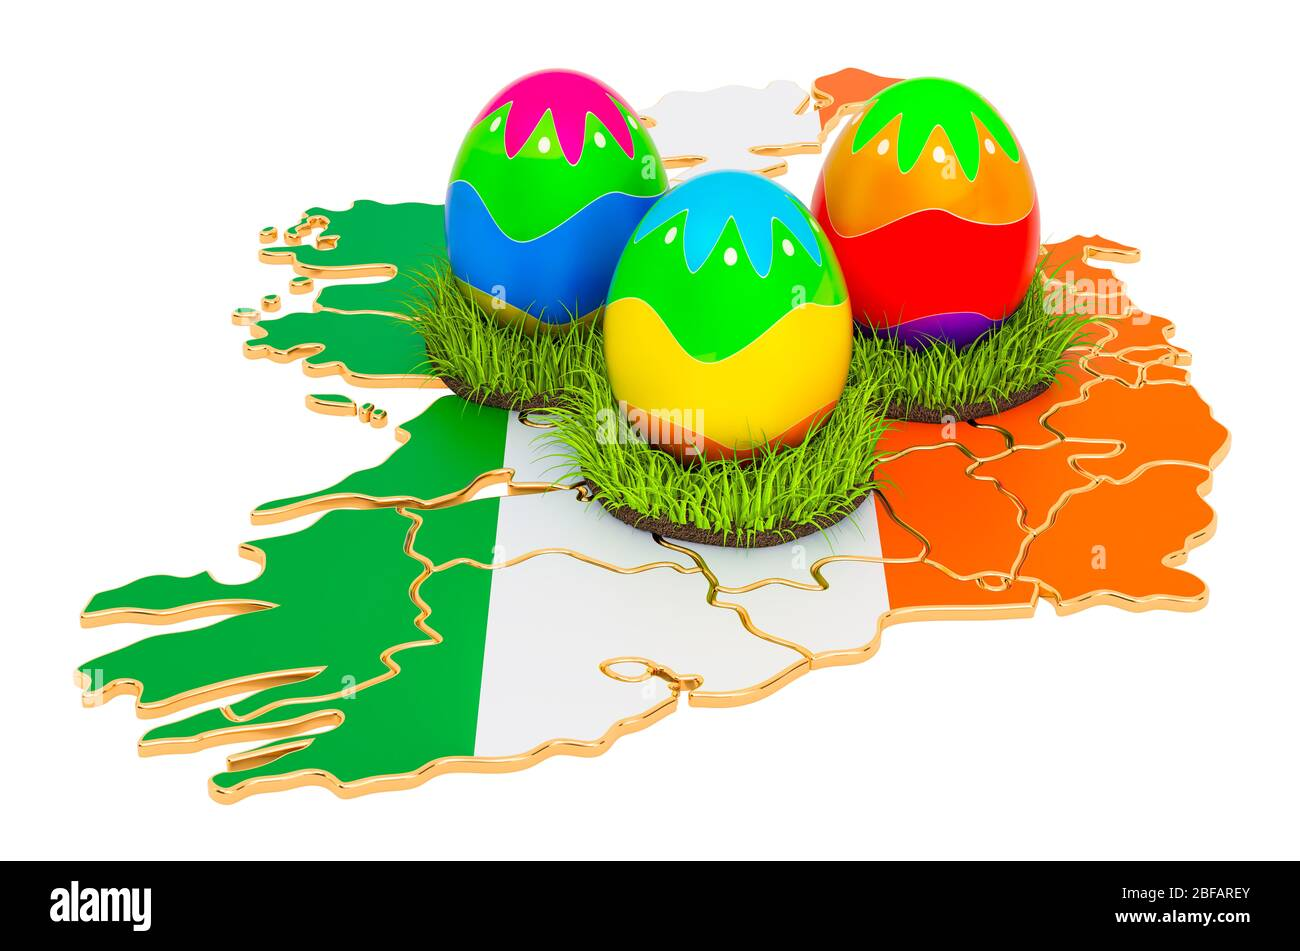 Easter Holiday In Ireland Easter Eggs On The Irish Map 3d Rendering Isolated On White Background Stock Photo Alamy